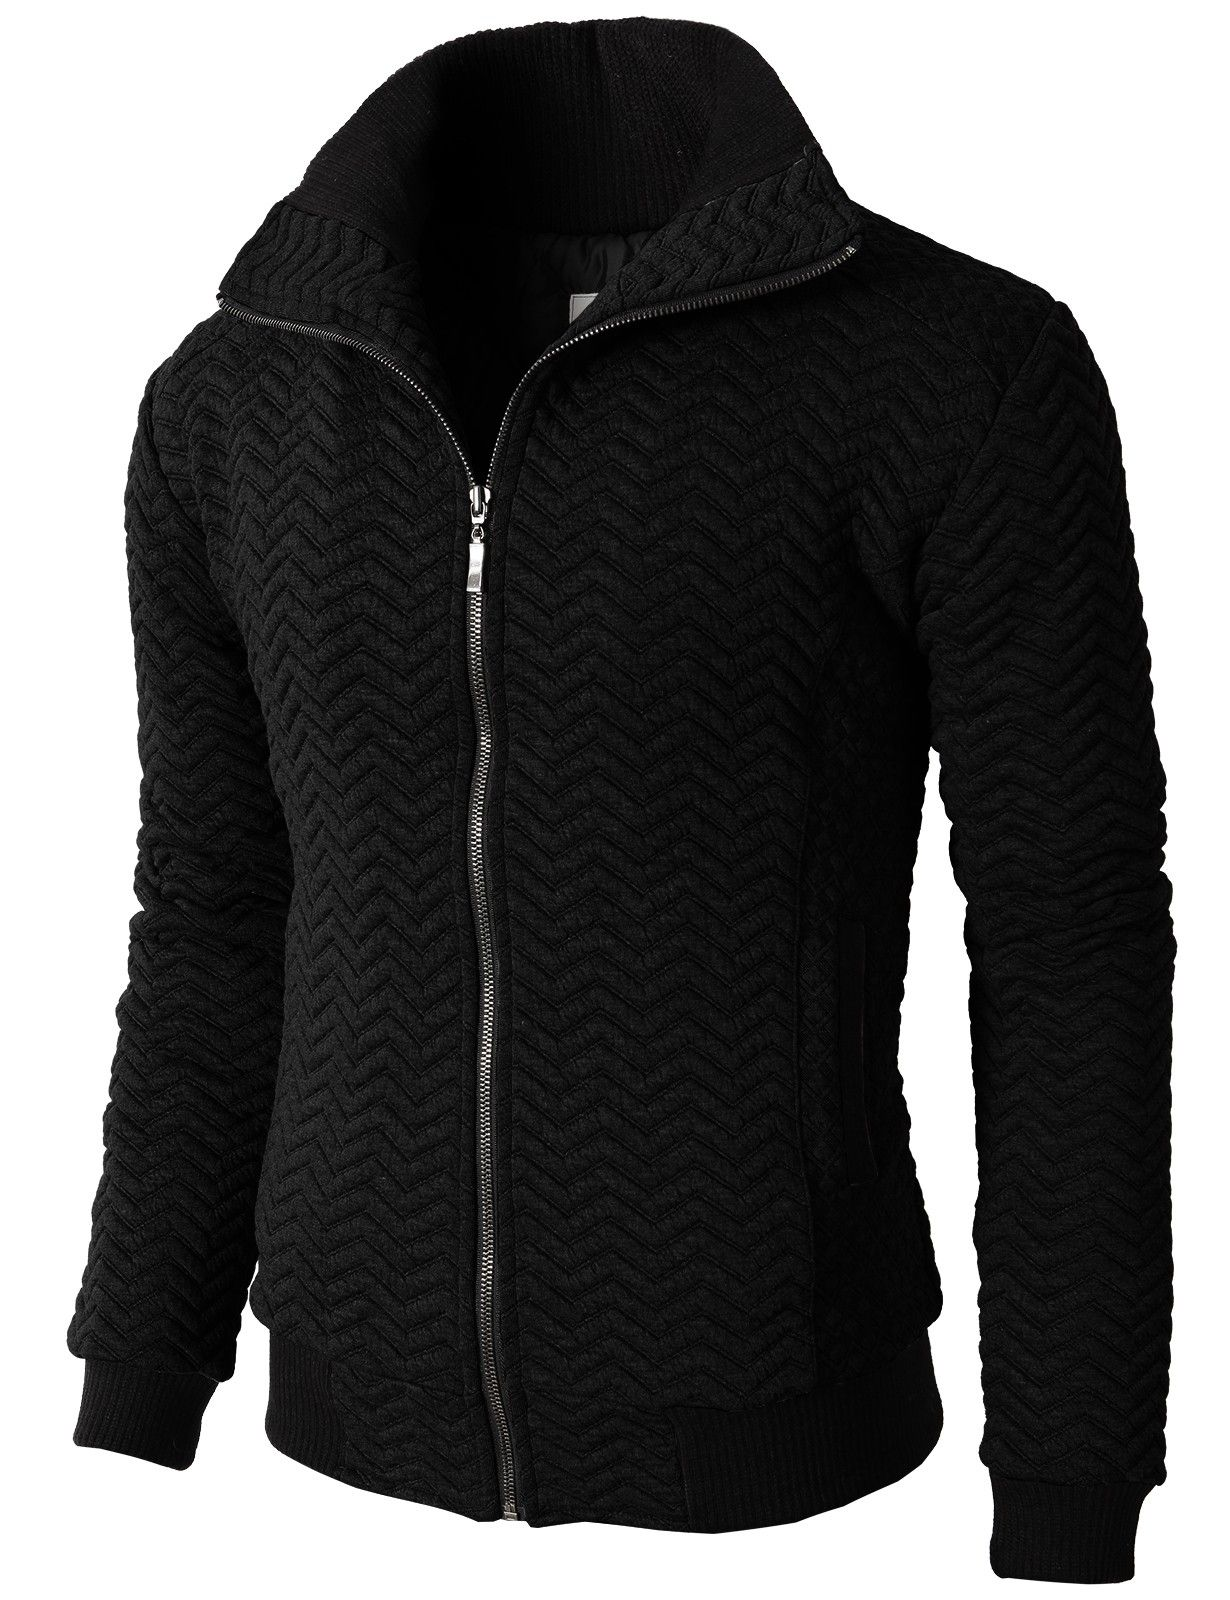 Doublju mens casual high neck zip up jumper with zigzag quilting